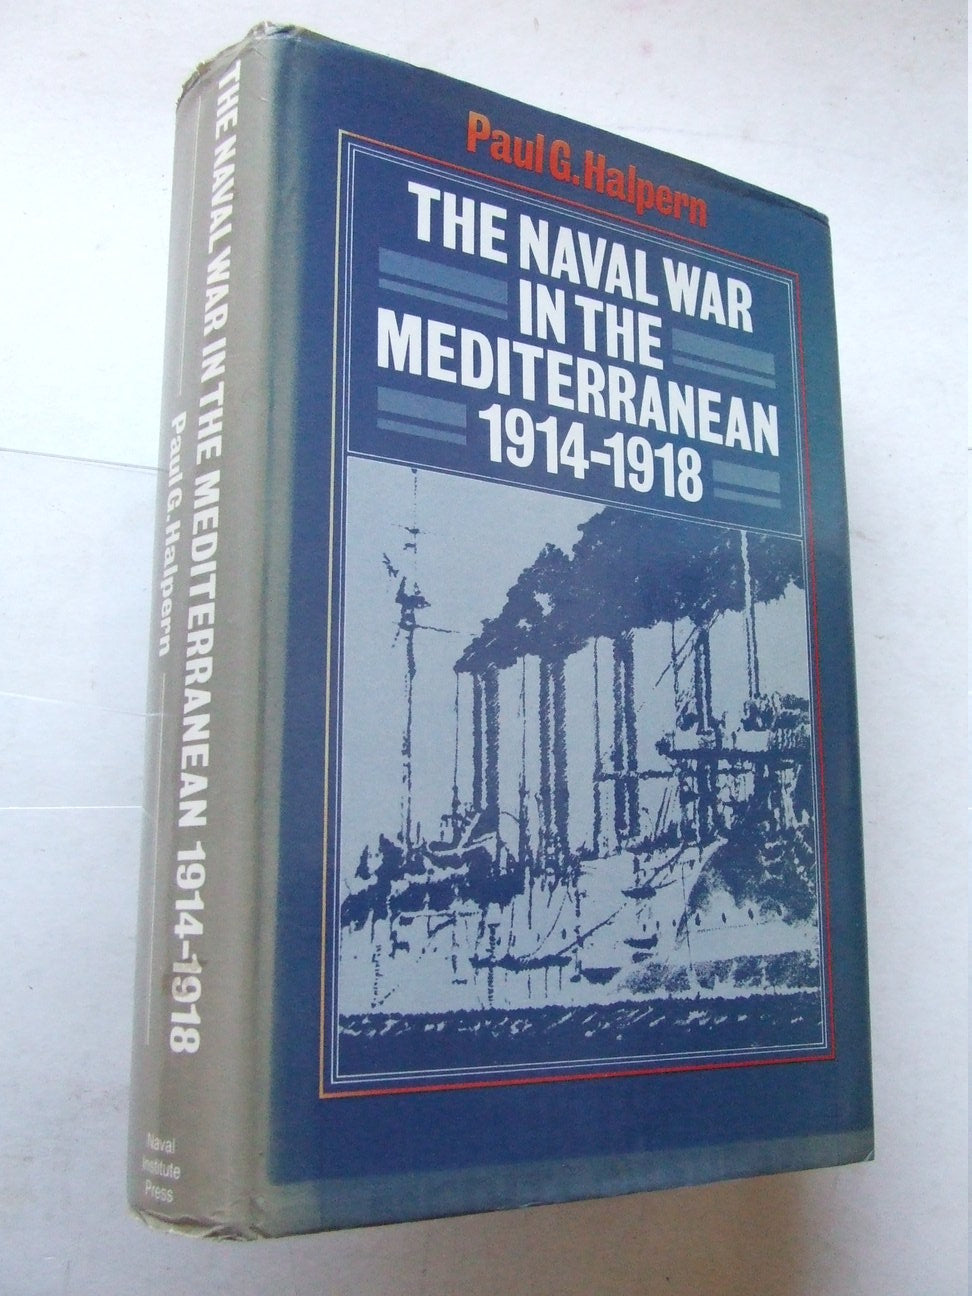 The Naval War in the Mediterranean 1914-1918